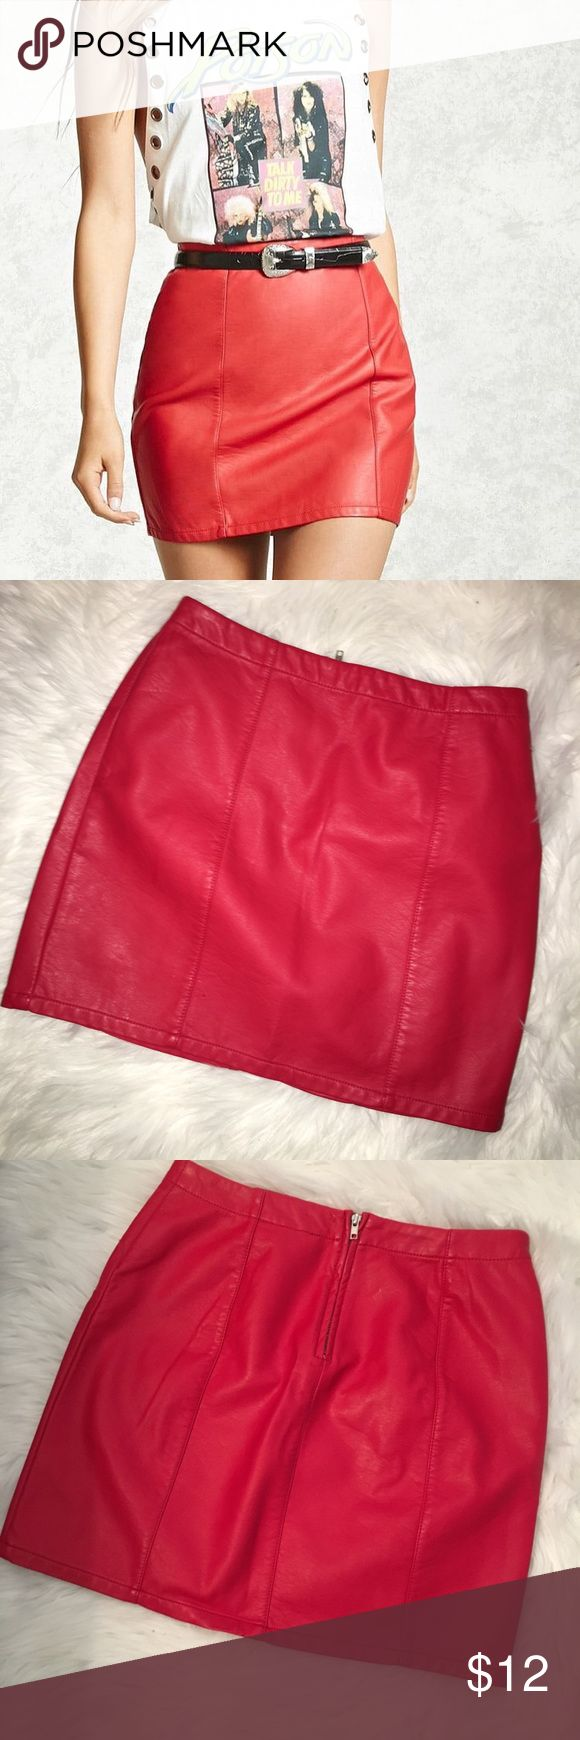 Faux Red Leather Skirt Worn once! It's a small from Forever 21. Forever 21 Skirts Mini